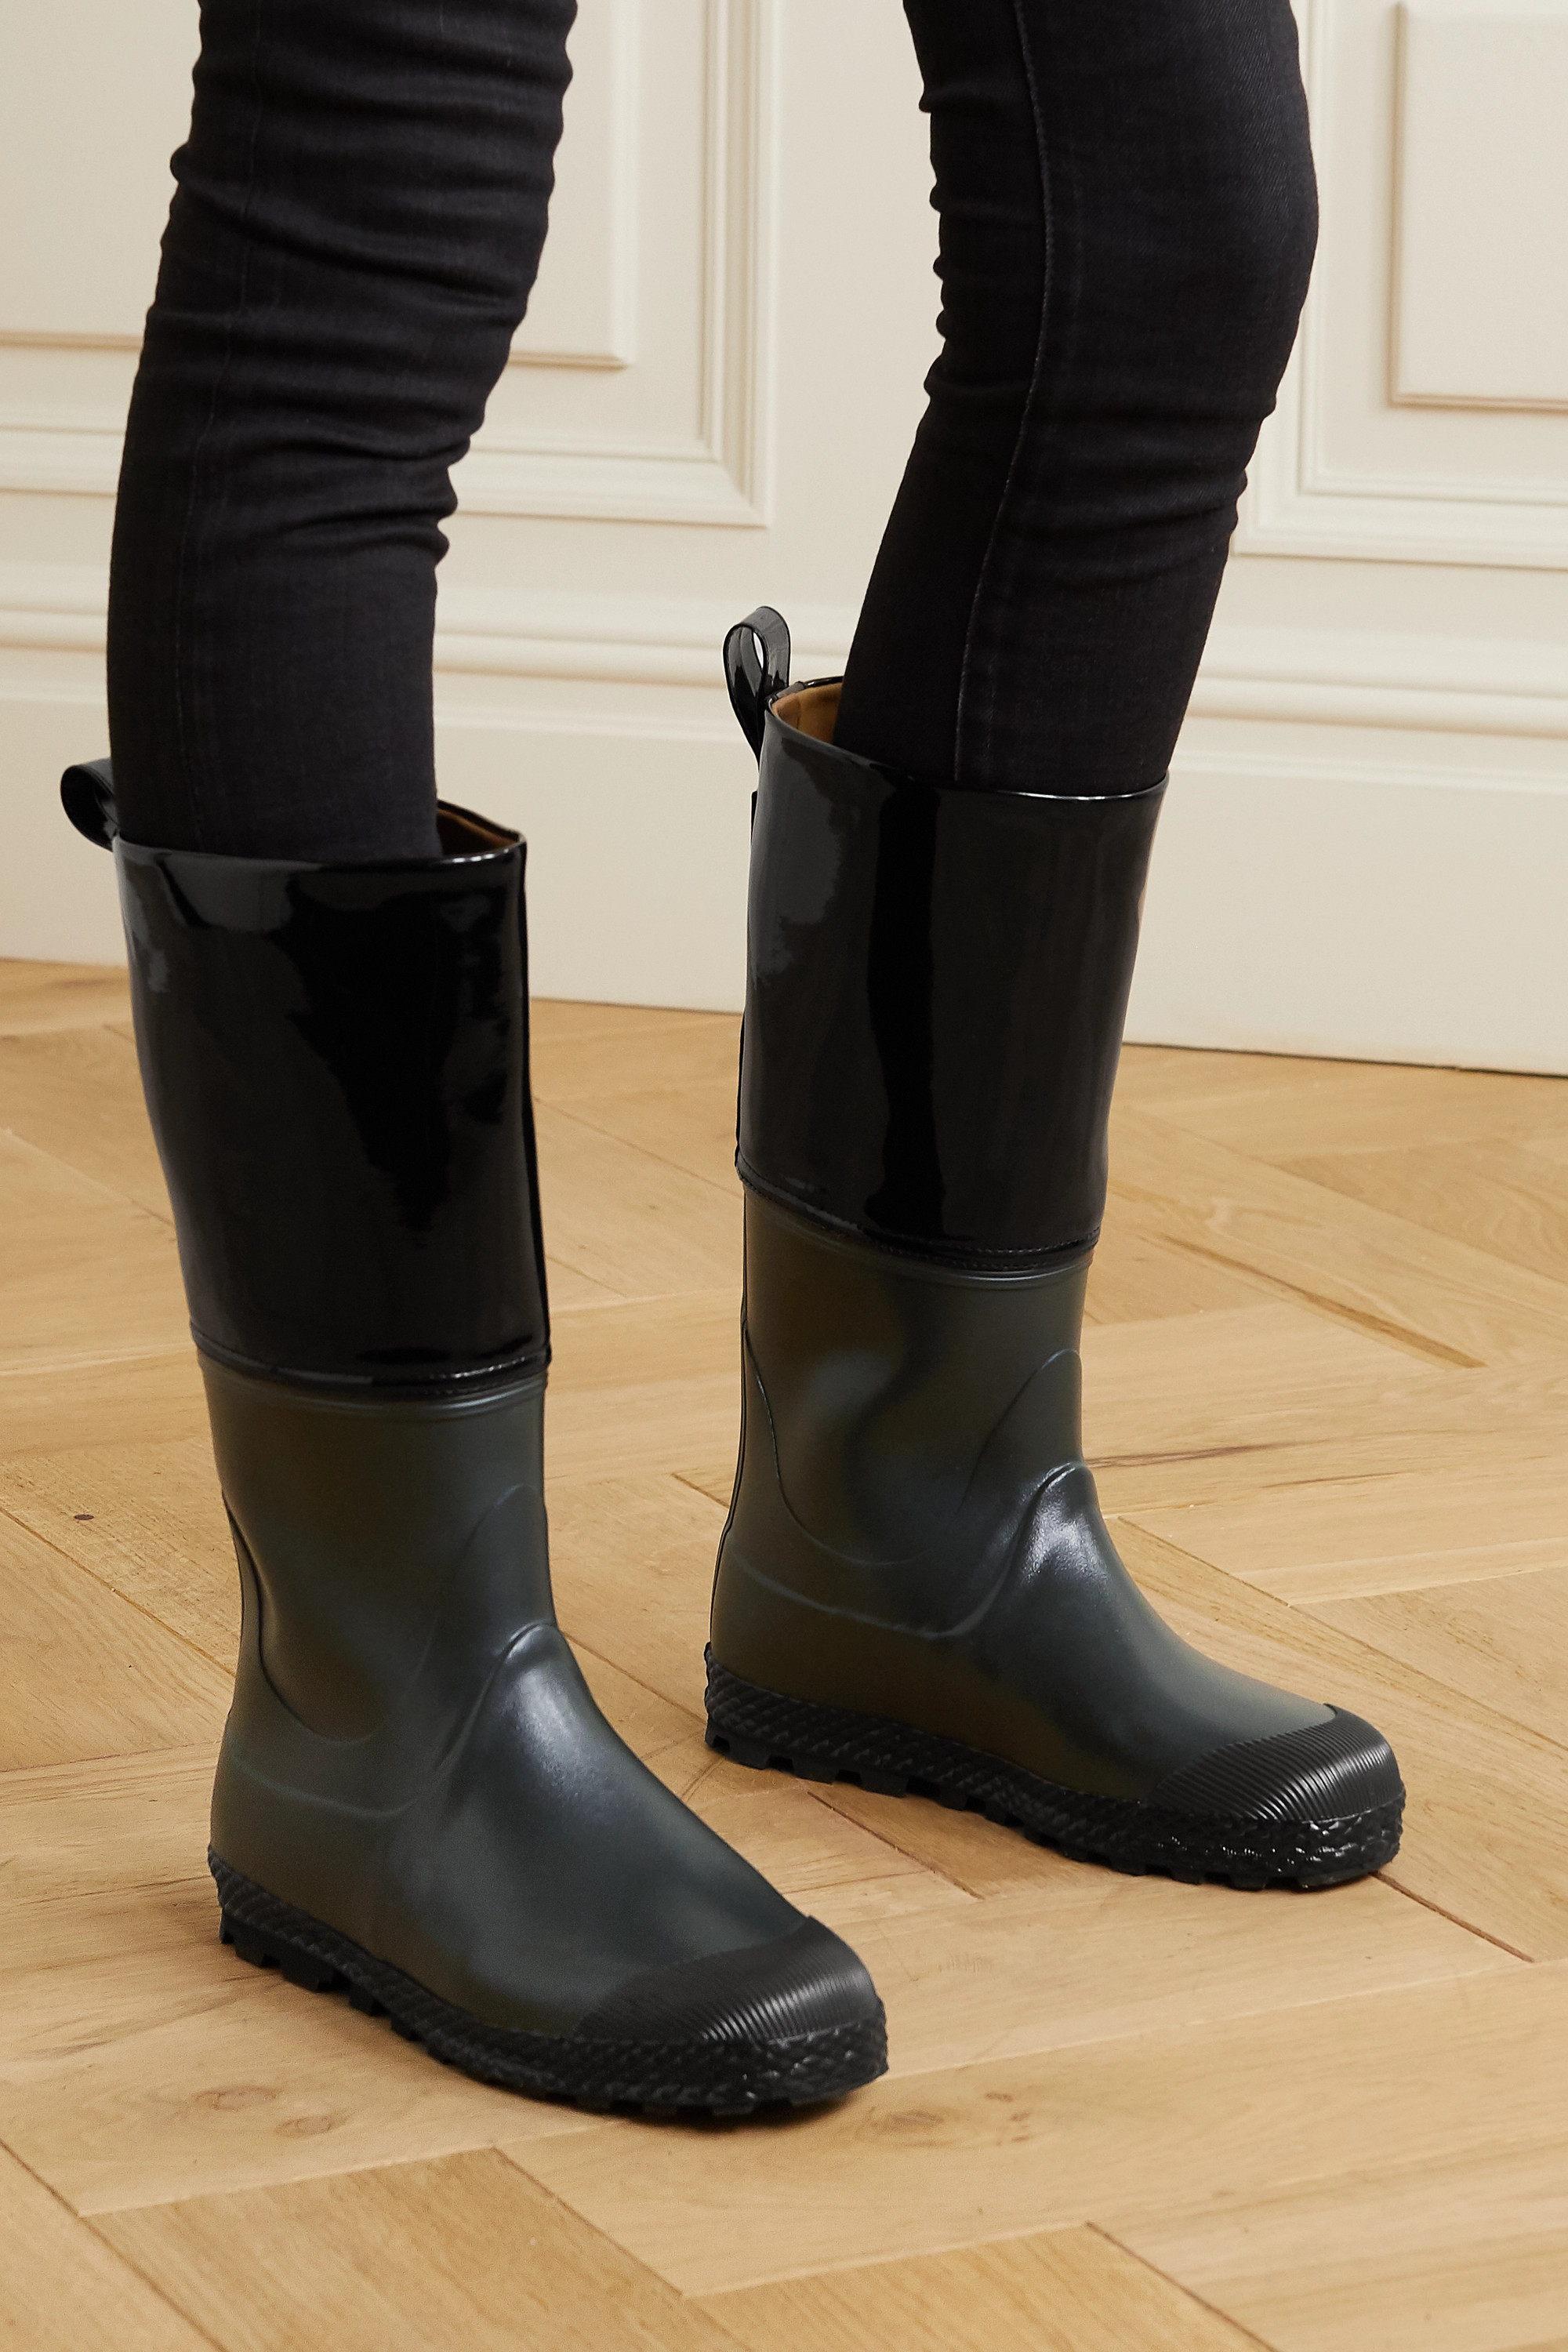 Ludwig Reiter Gardener rubber and patent-leather rain boots